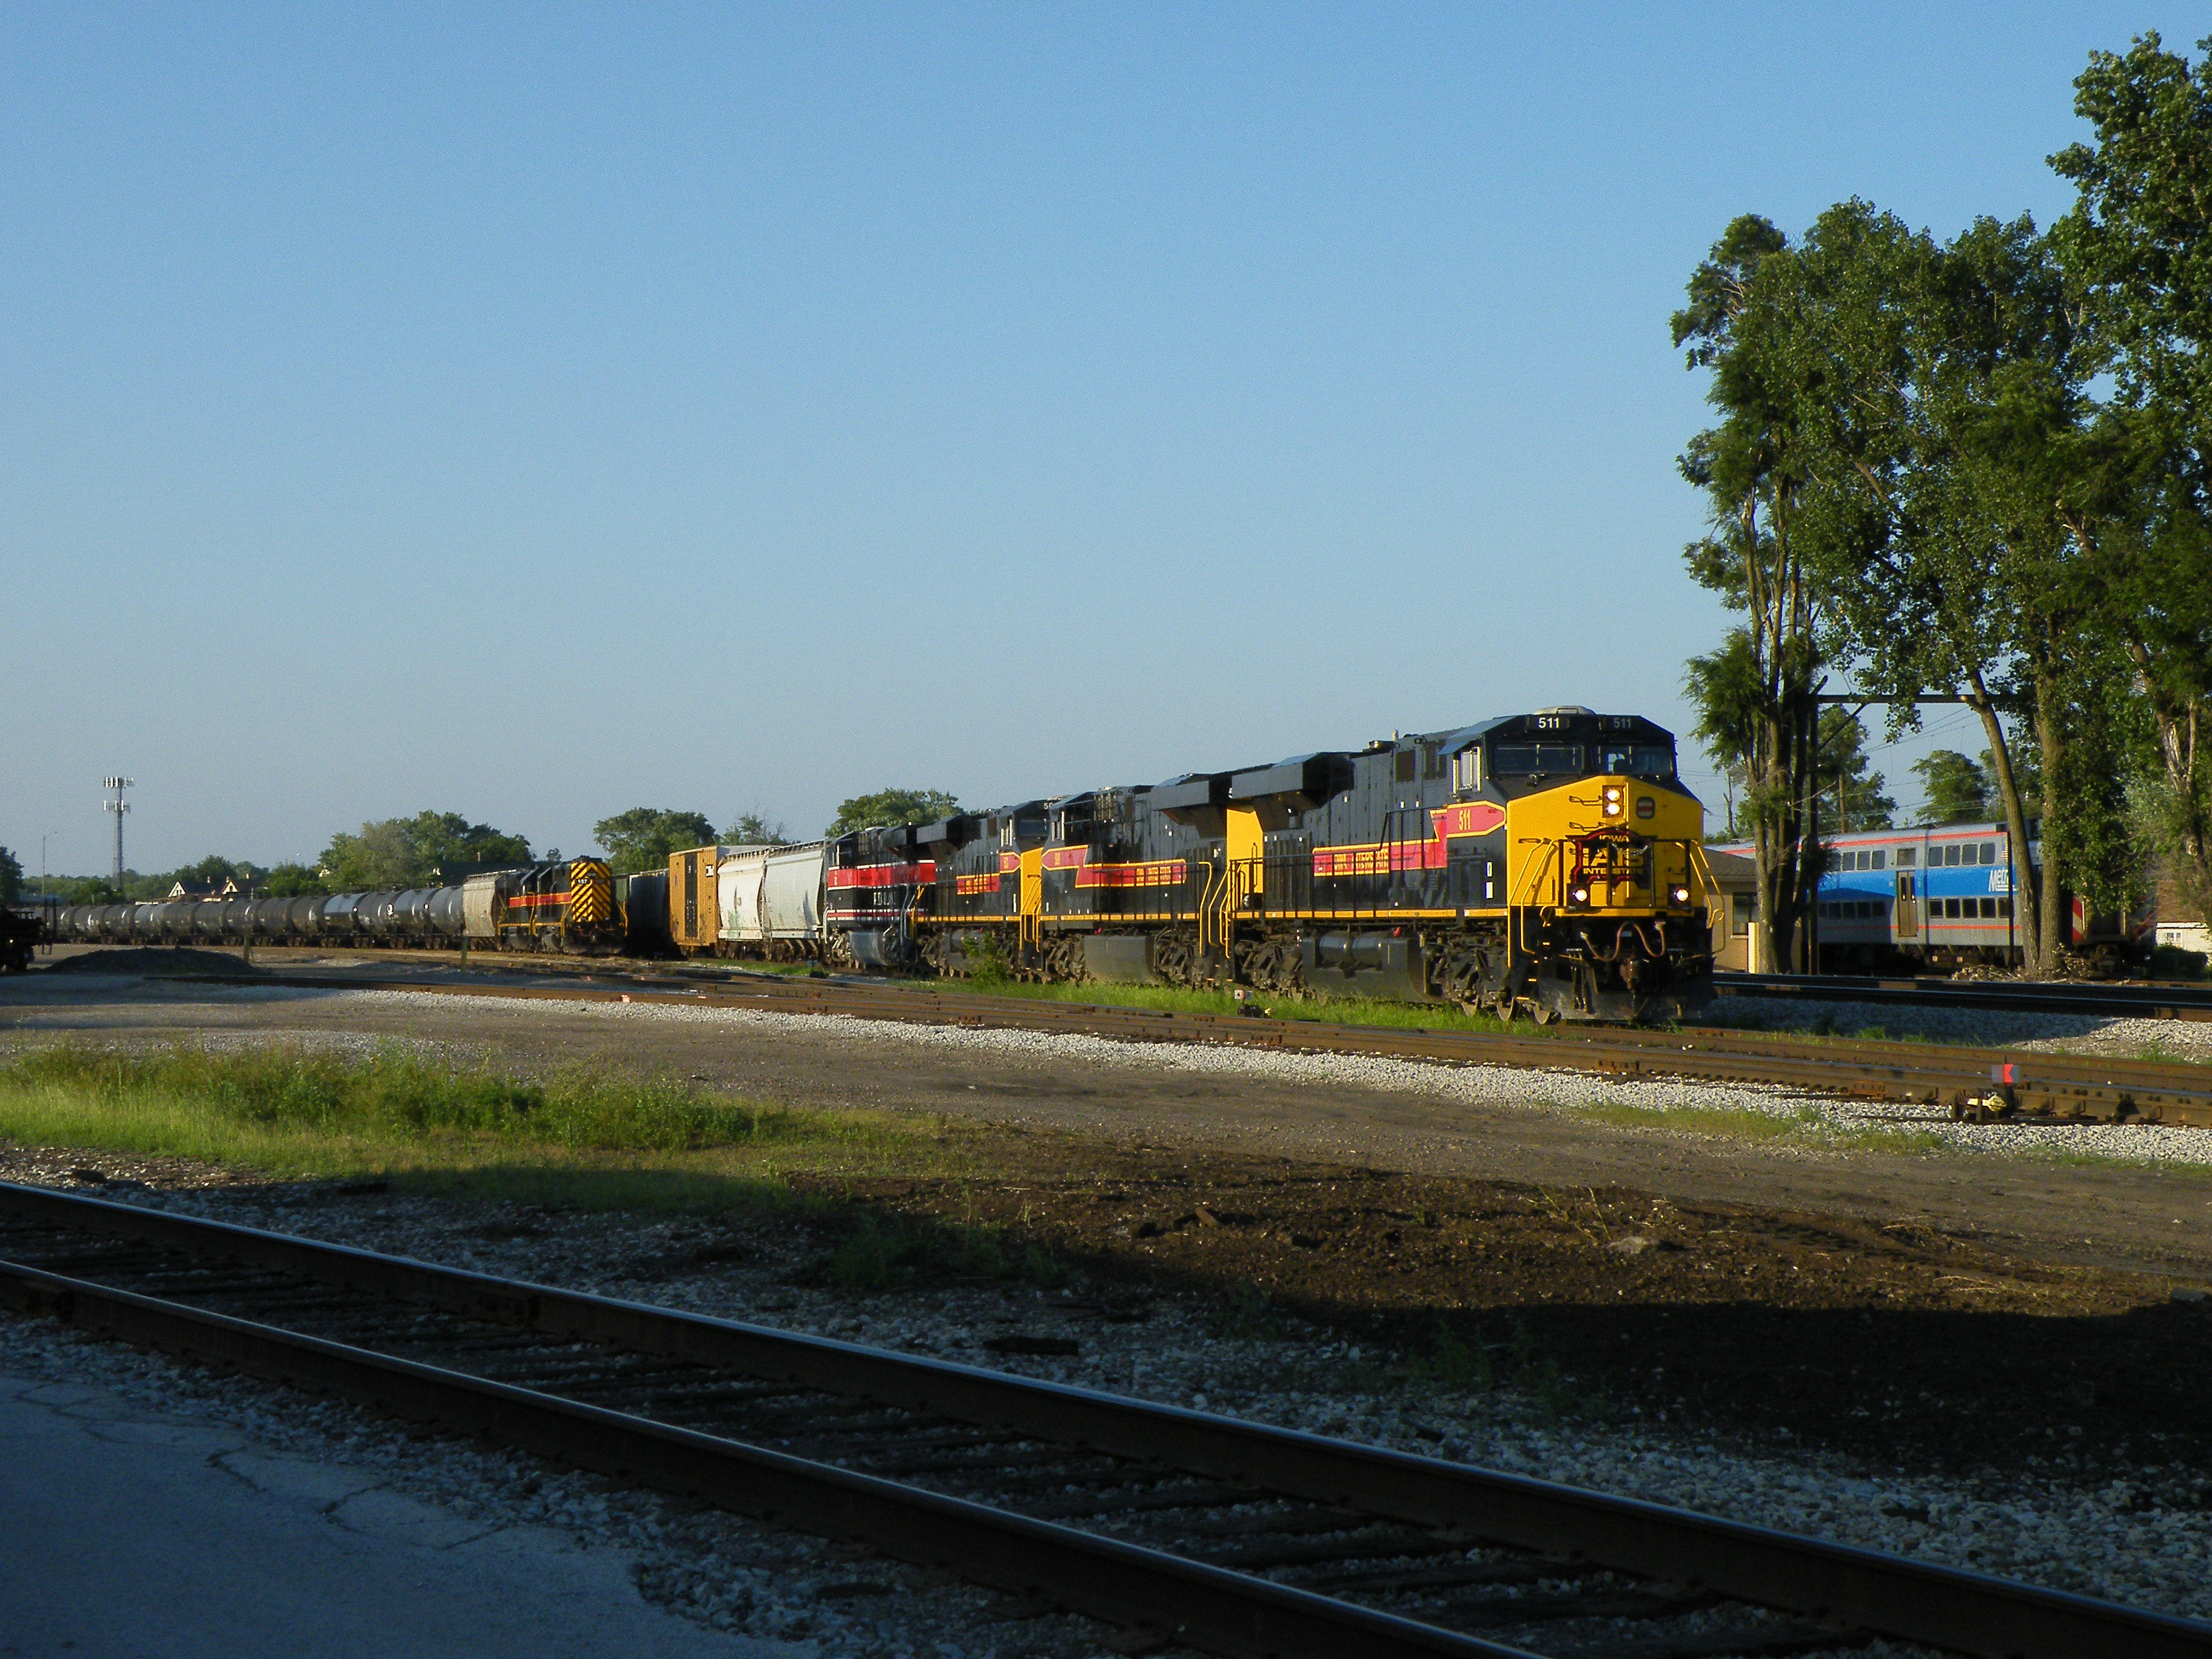 Iowa 511 is set to lead a lengthy BICB out of Burr Oak on this beautiful summer evening. The power tonight is four big GE's. Over on the left is a nifty little EMD consist for a BIRI type train later that evening. 07-16-10